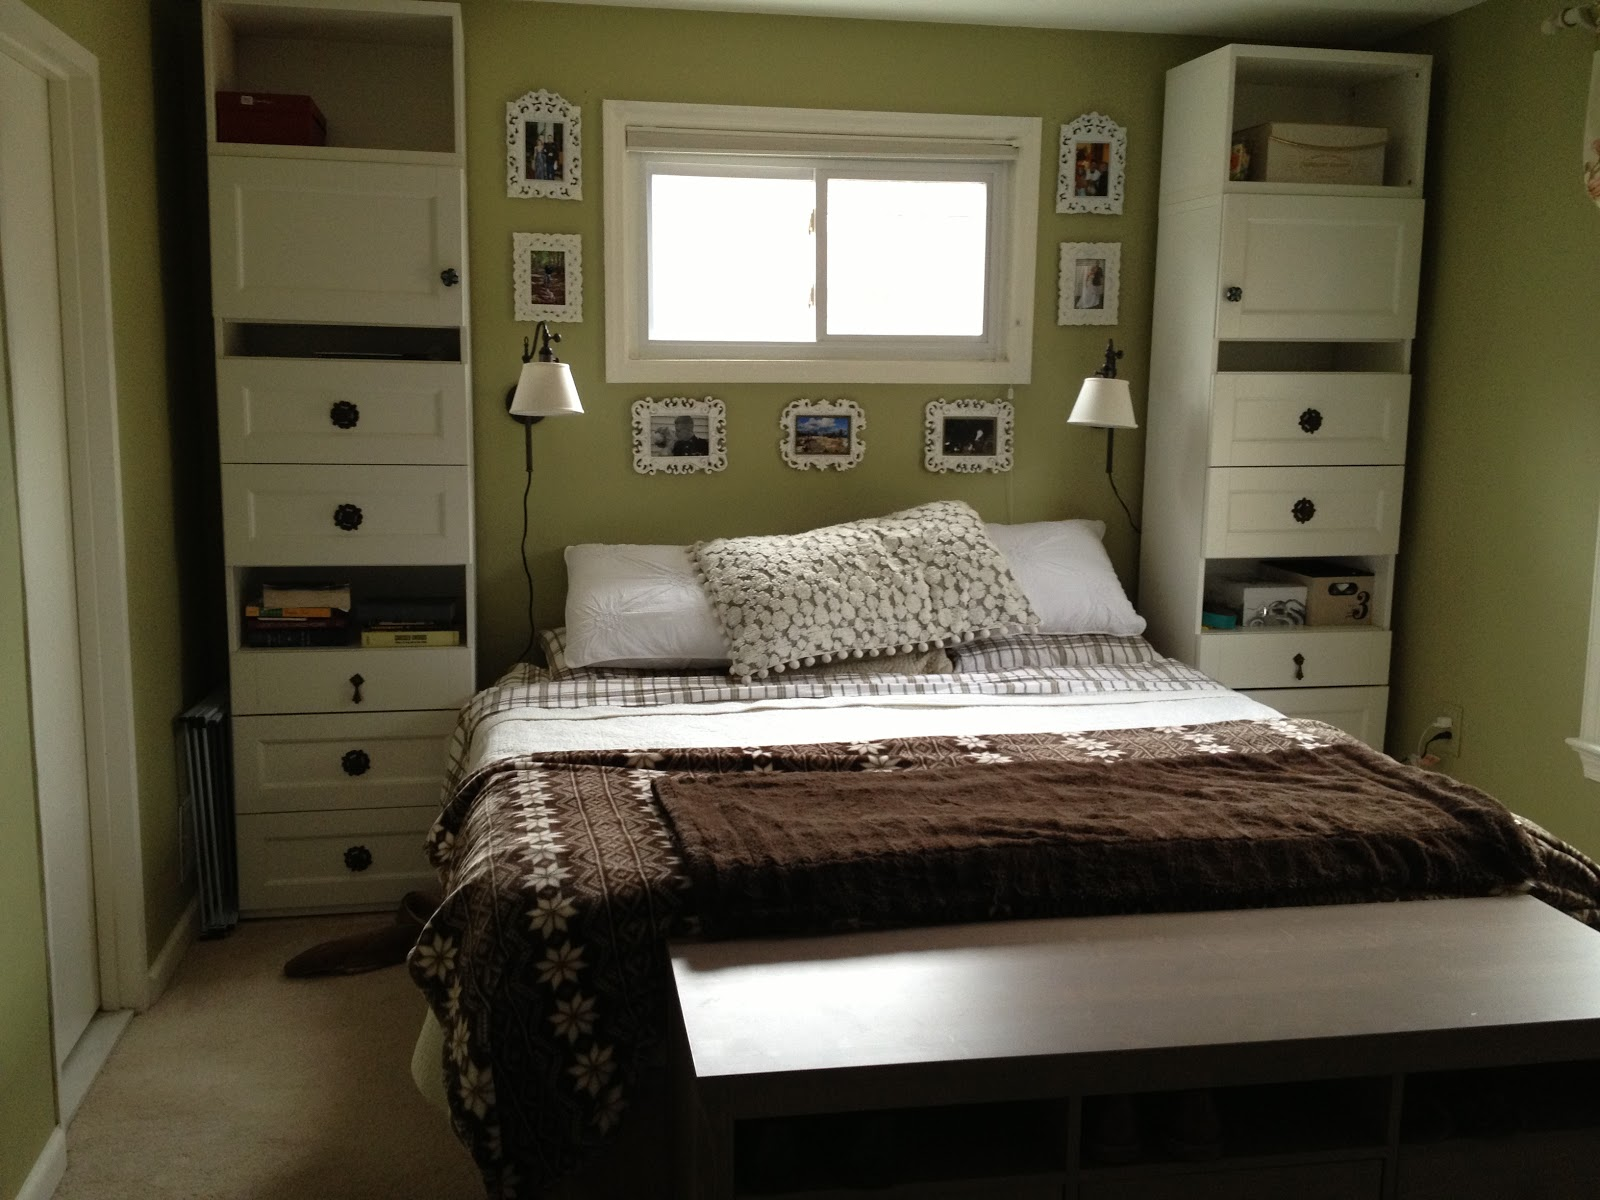 Chez dufresne master bedroom makeover for Ikea bedroom storage